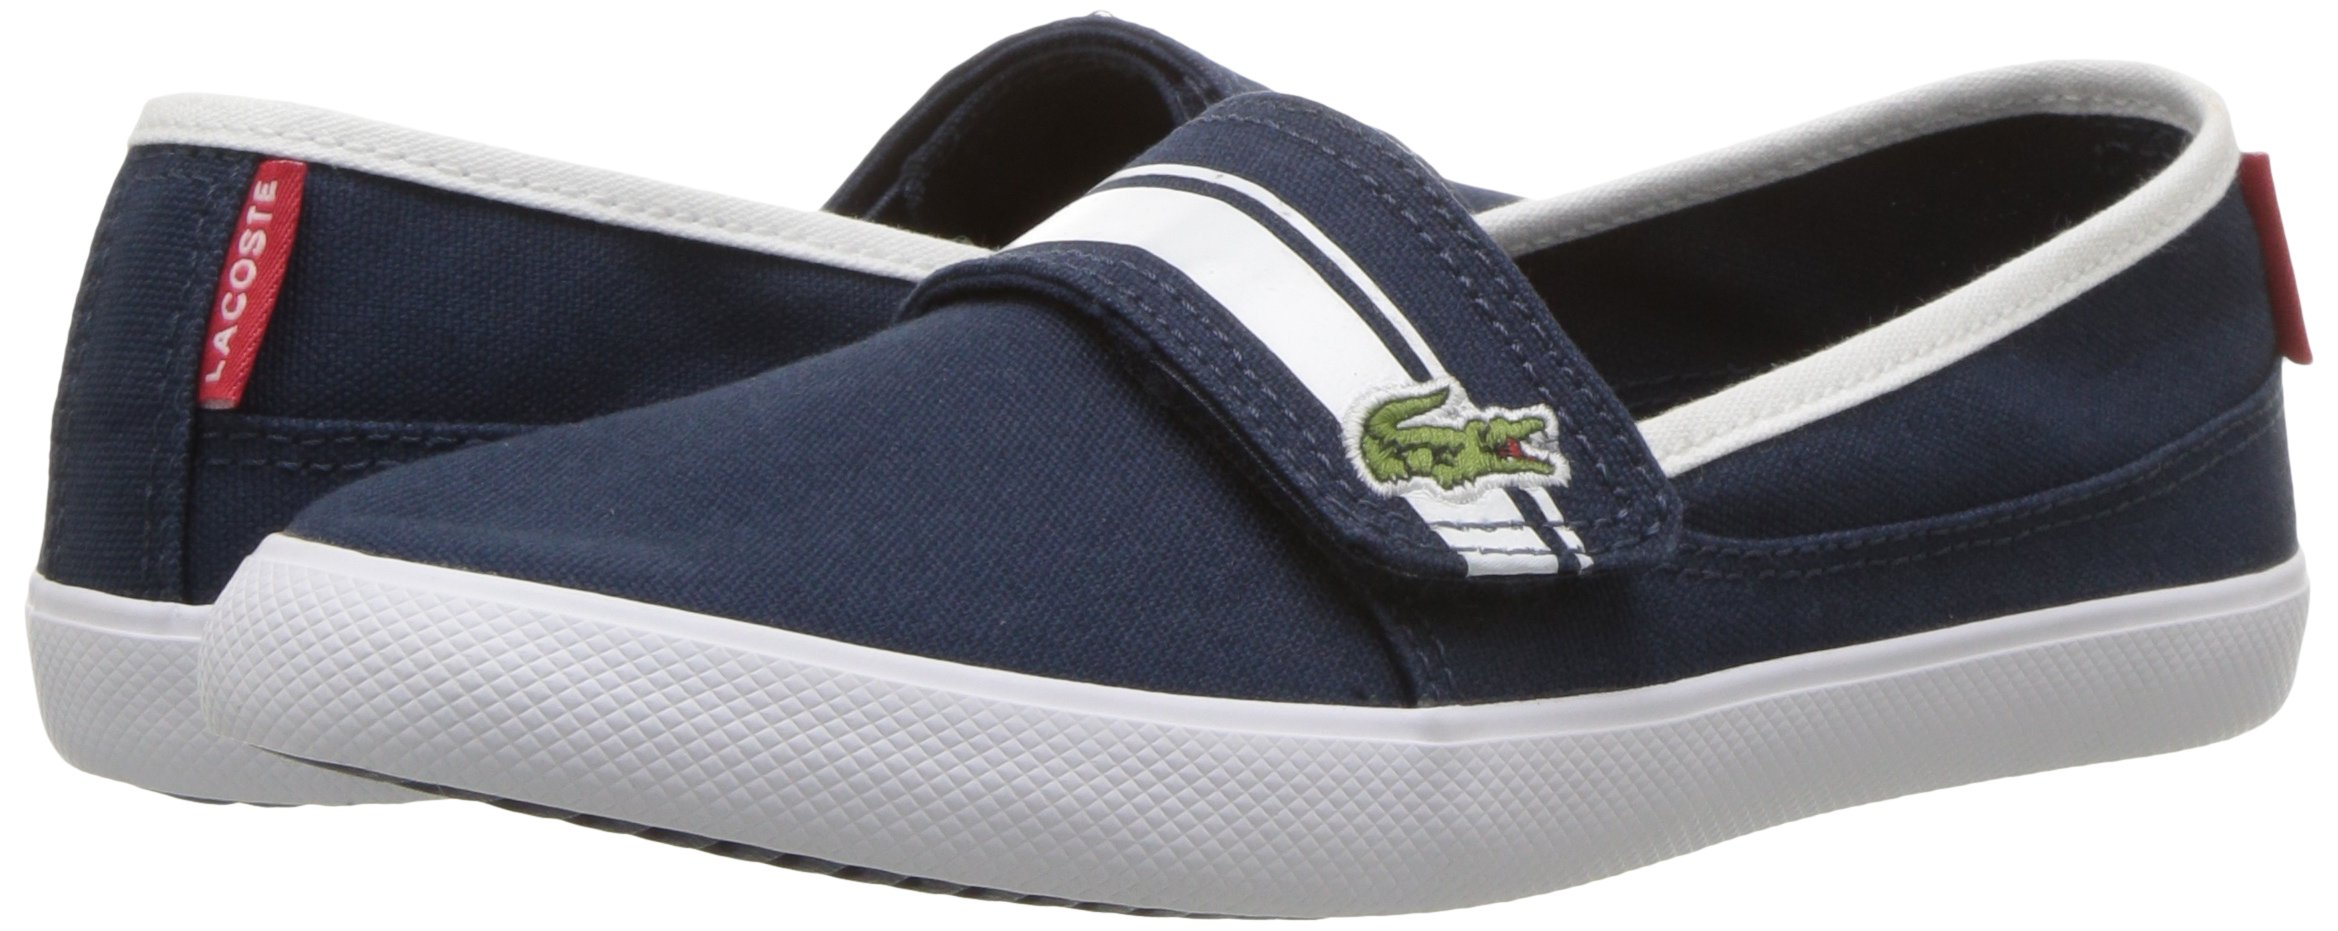 Lacoste Kids' Marice Slip-ONS,Navy/White Cotton Canvas,13. M US Little Kid by Lacoste (Image #5)